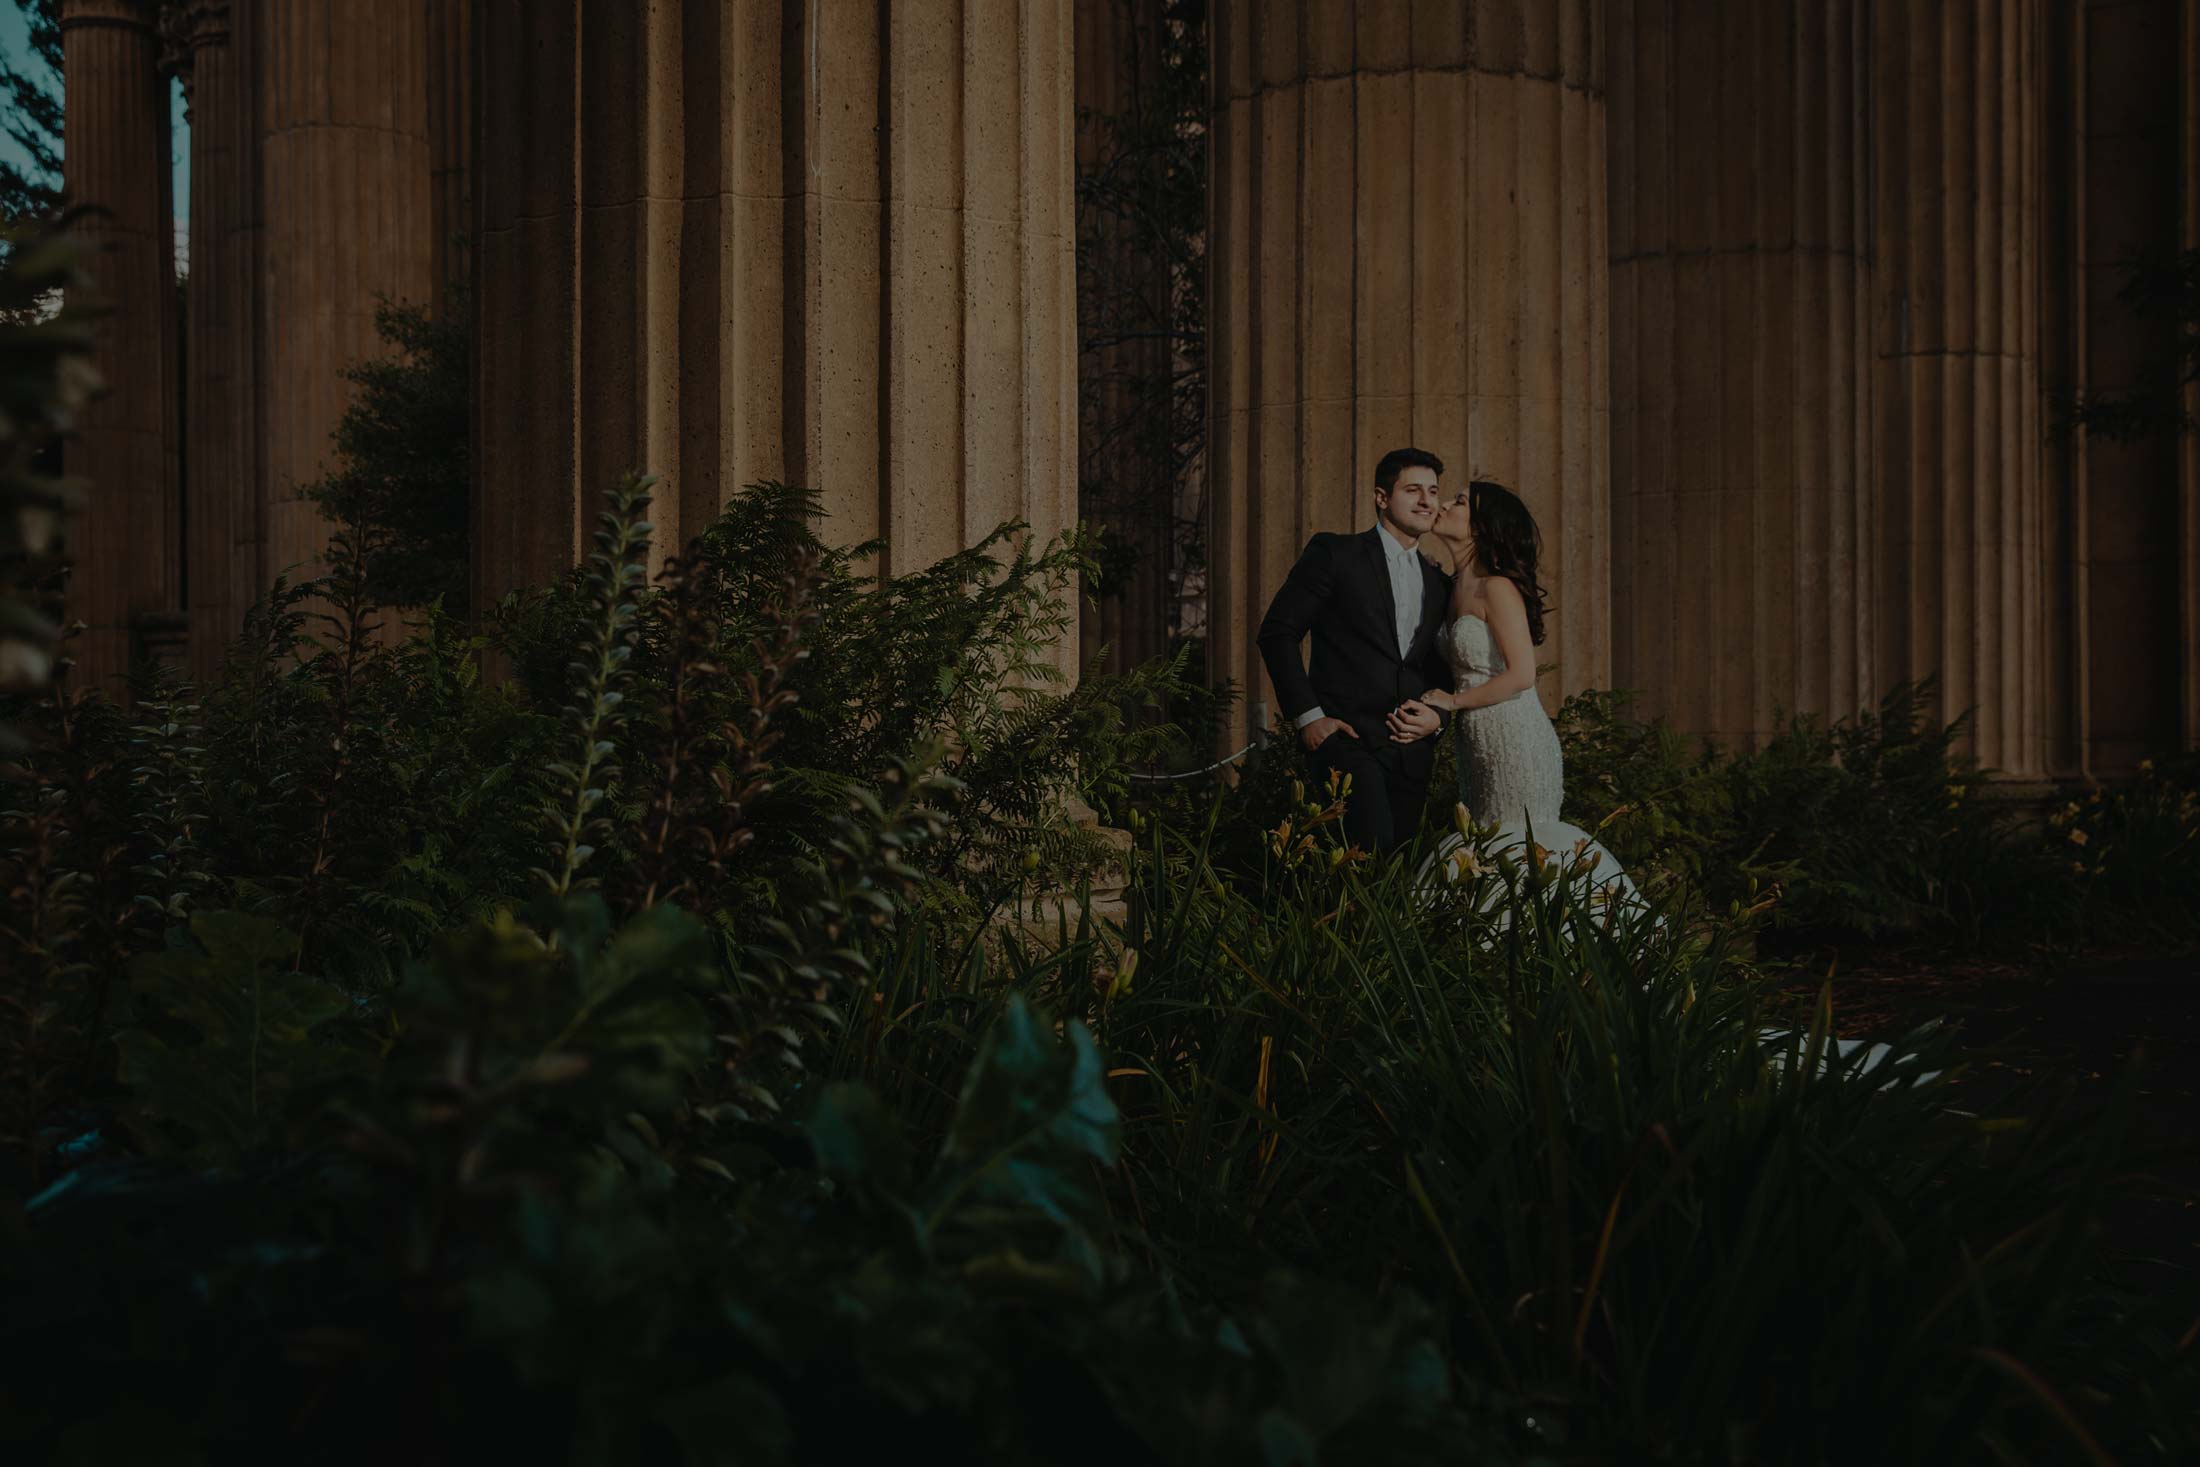 Wedding Cinematography and Photography Reviews